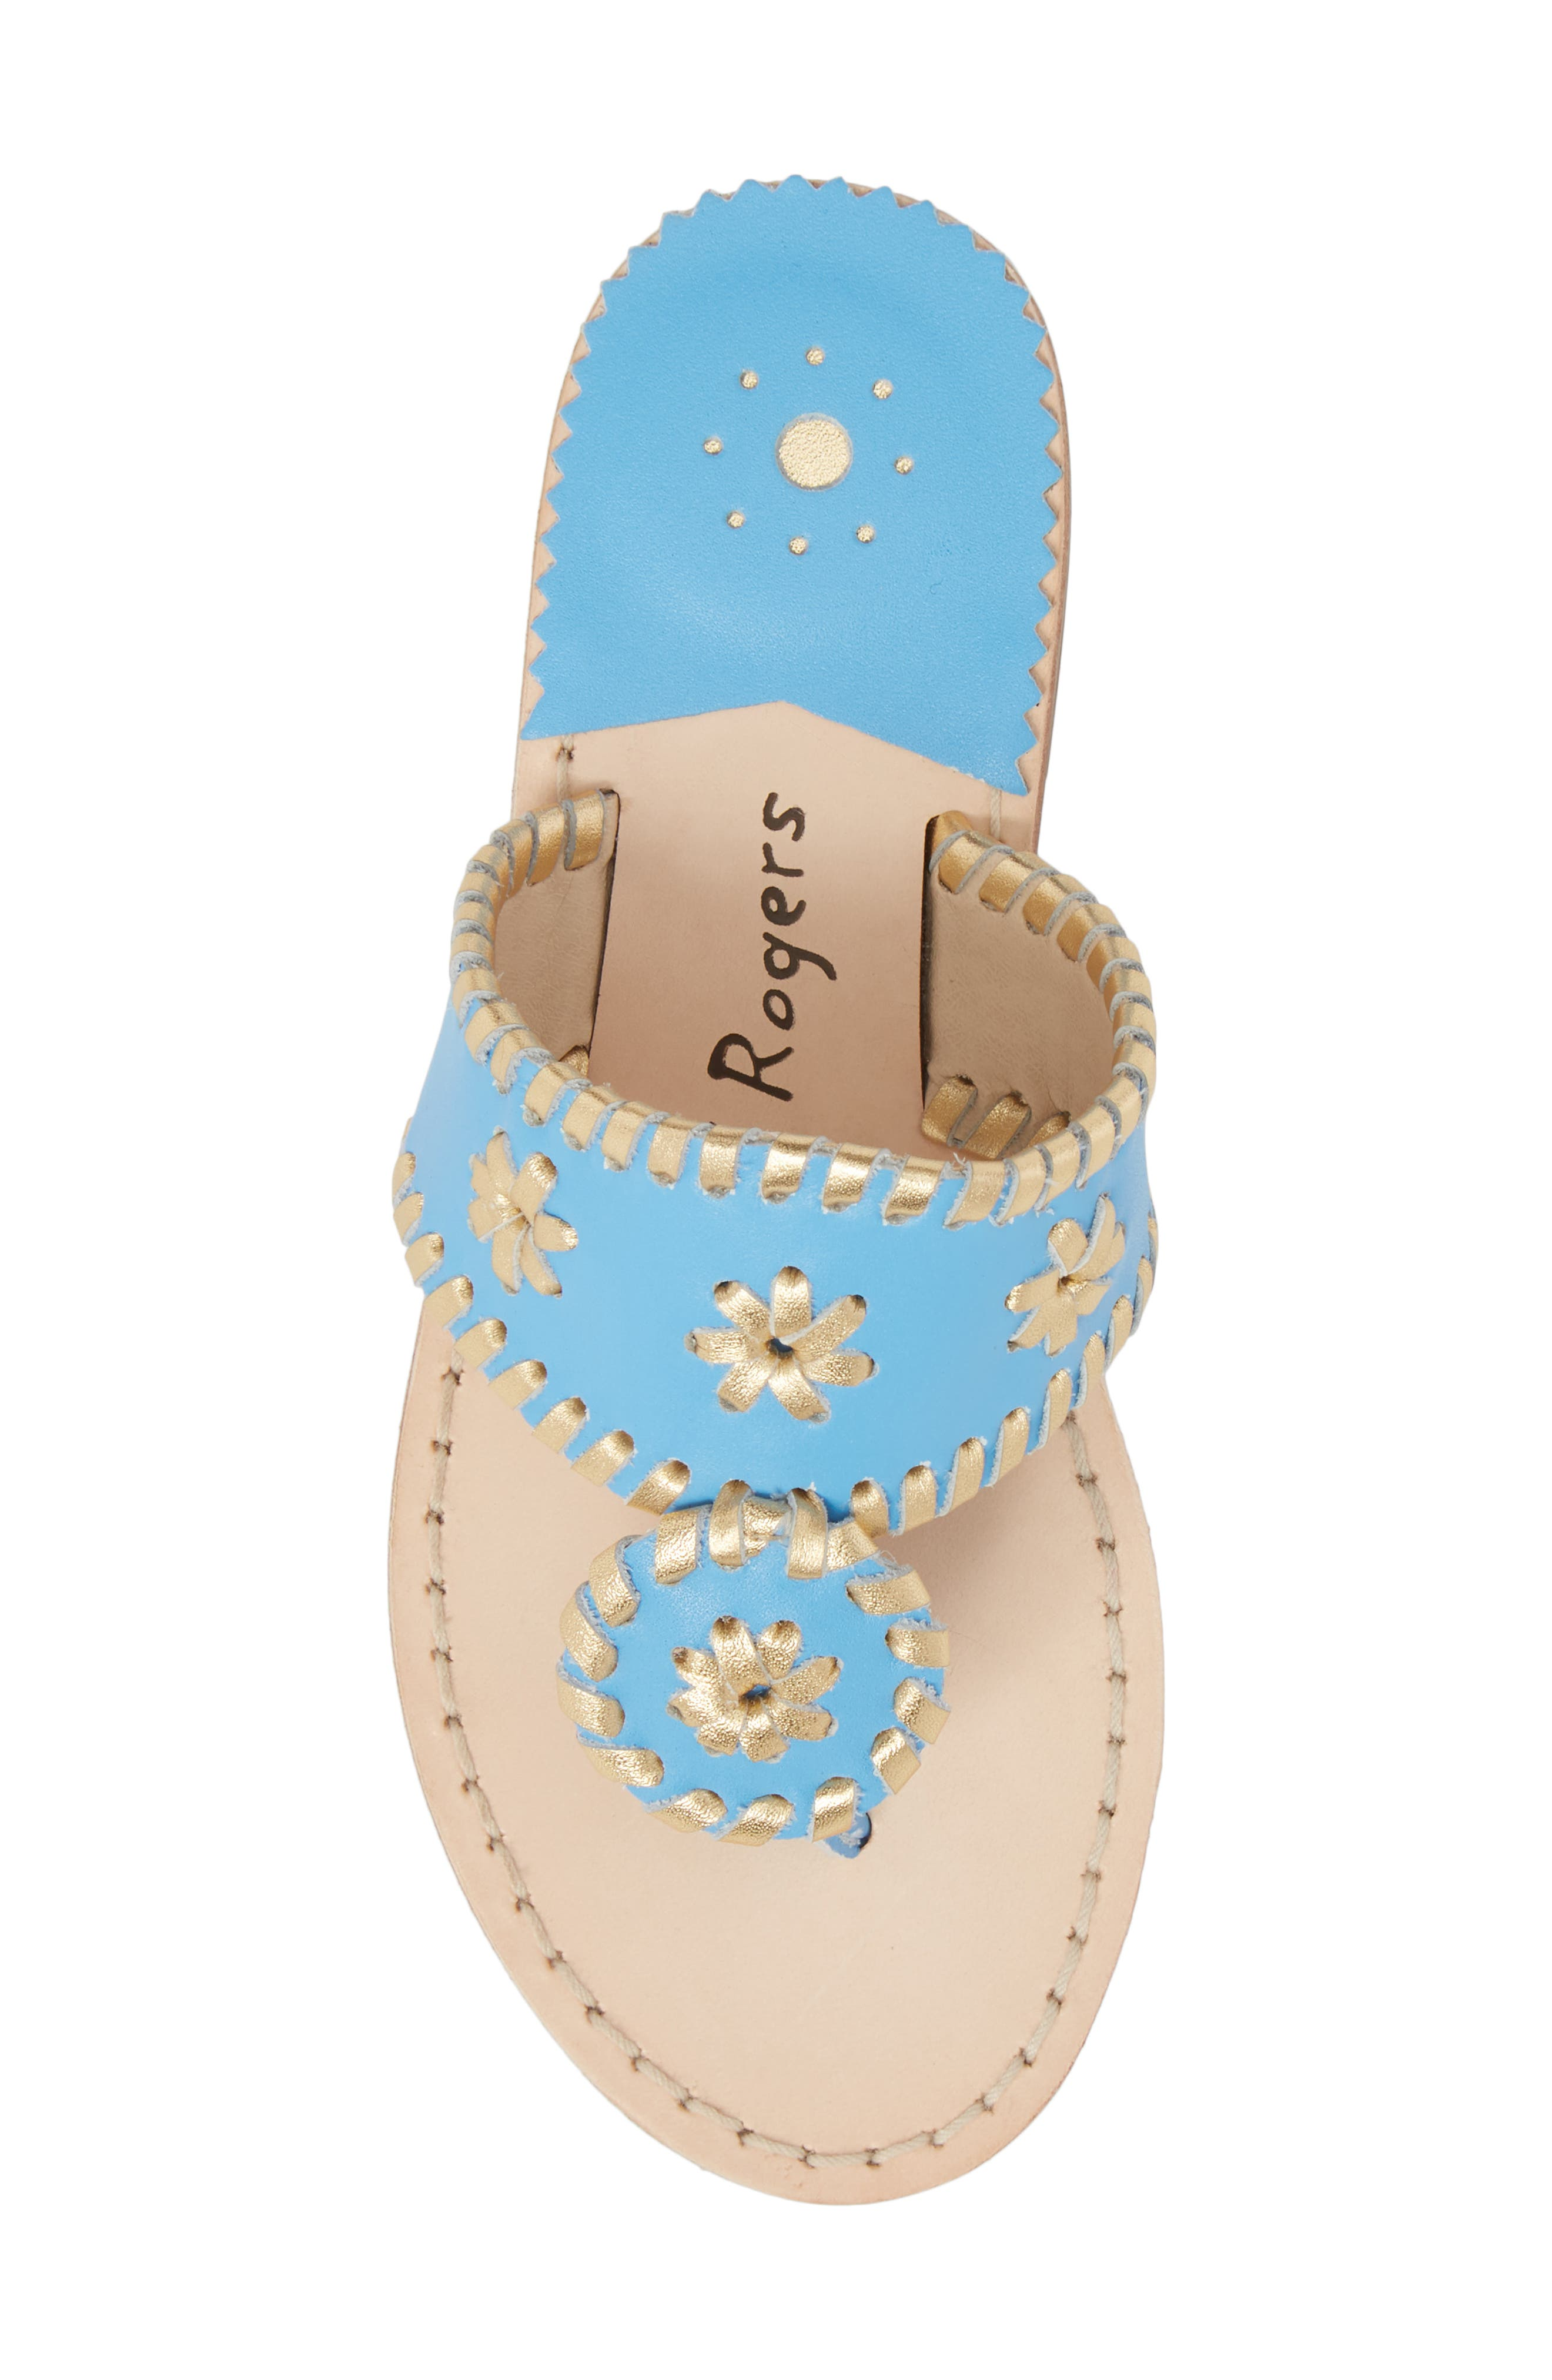 Miss Hollis Metallic Trim Thong Sandal,                             Alternate thumbnail 5, color,                             FRENCH BLUE/ GOLD LEATHER